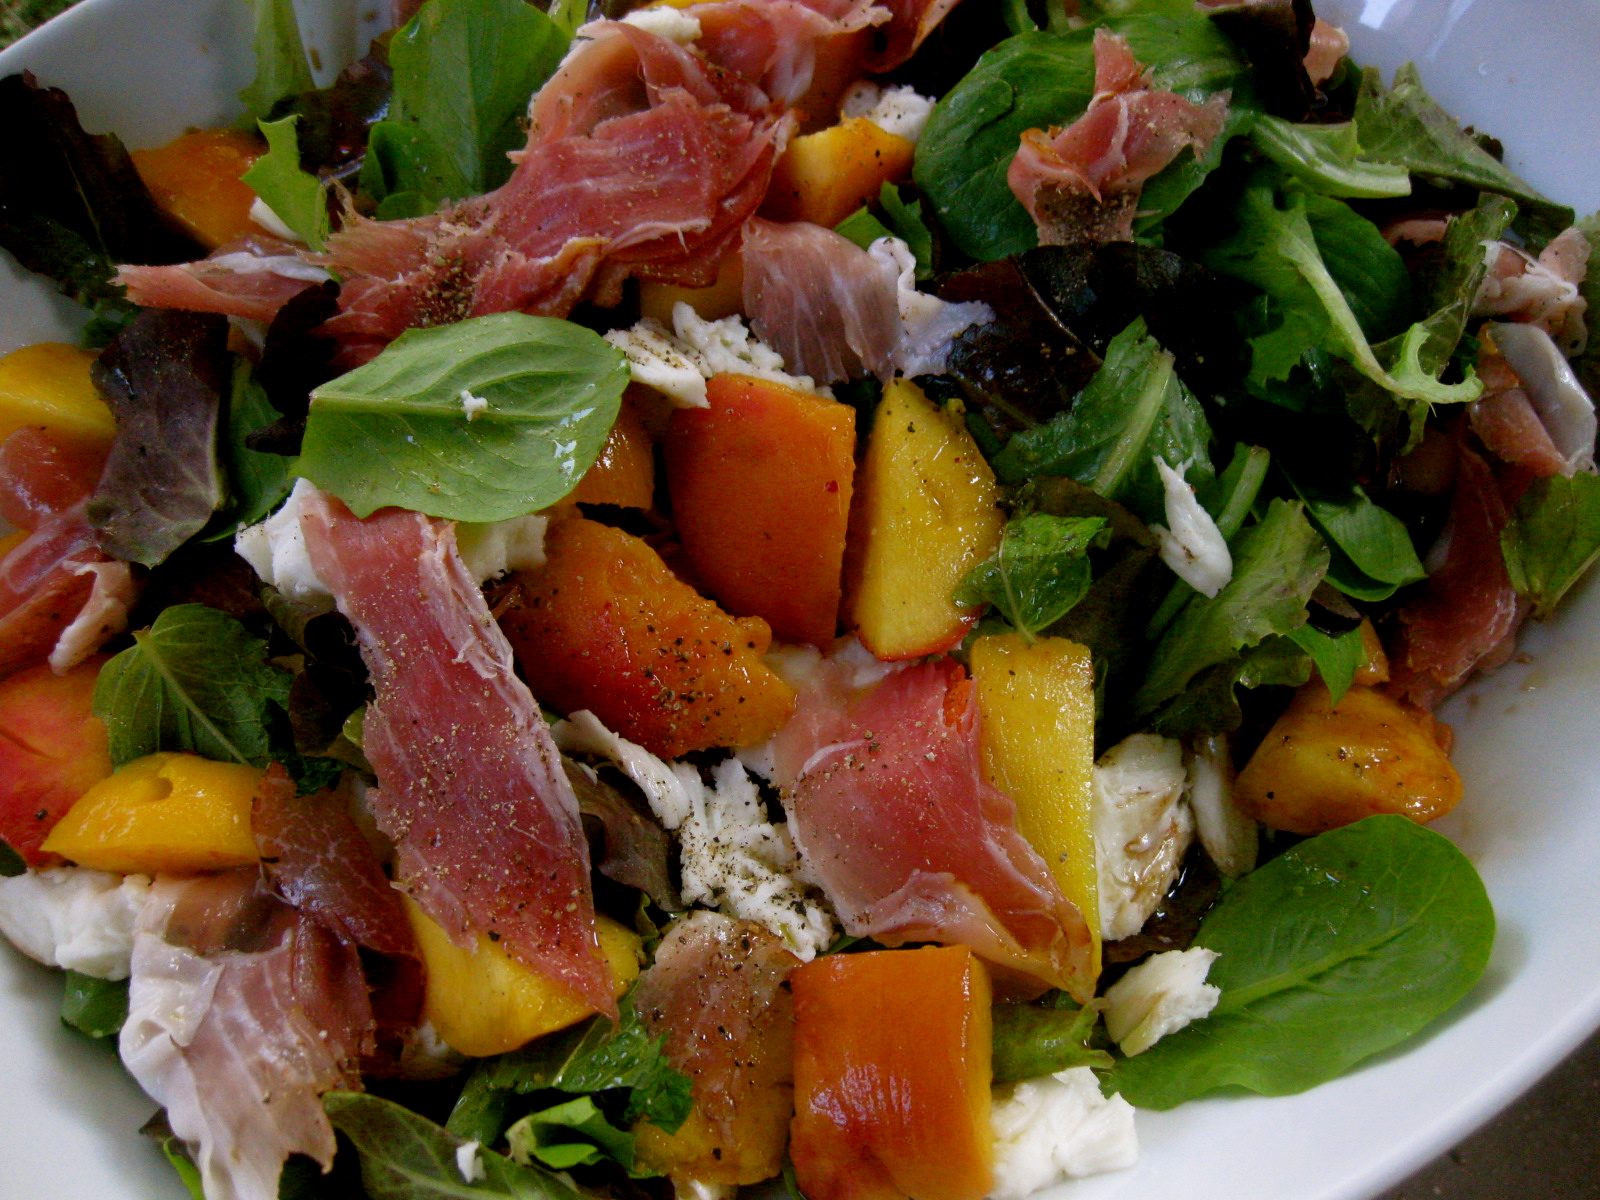 Inspired Kara: Peach, Mozzarella and Prosciutto Salad